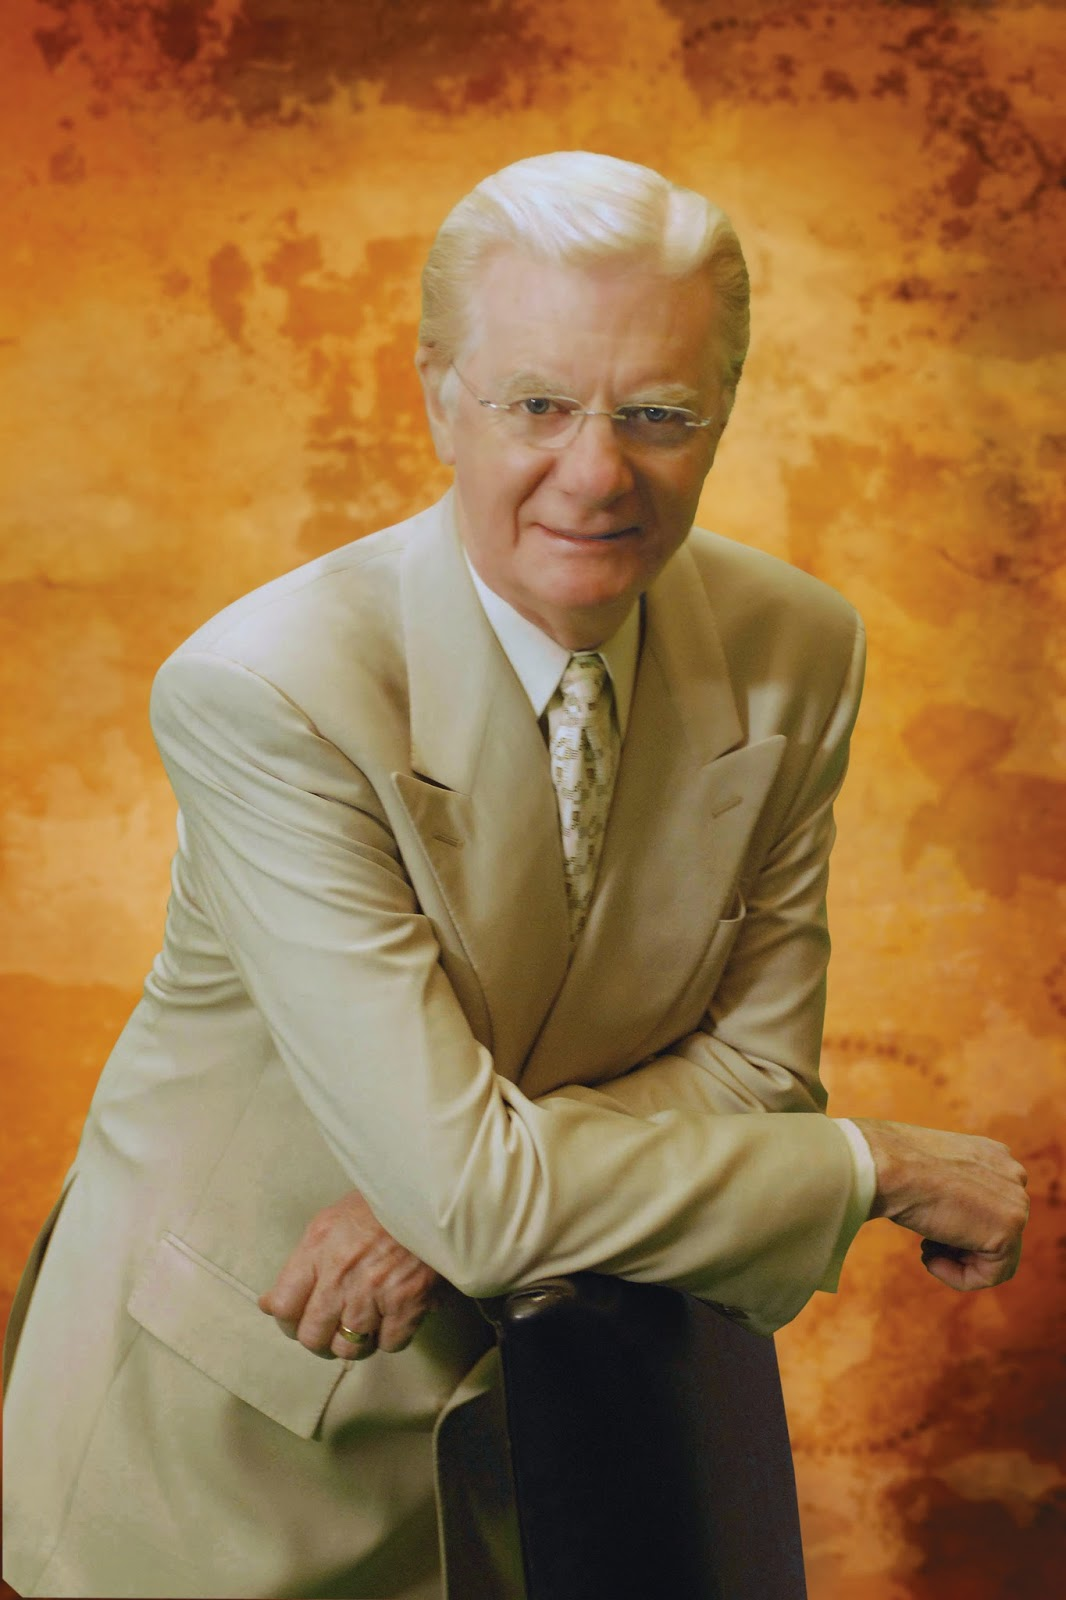 Bob Proctor, The 11 Forgotten Laws